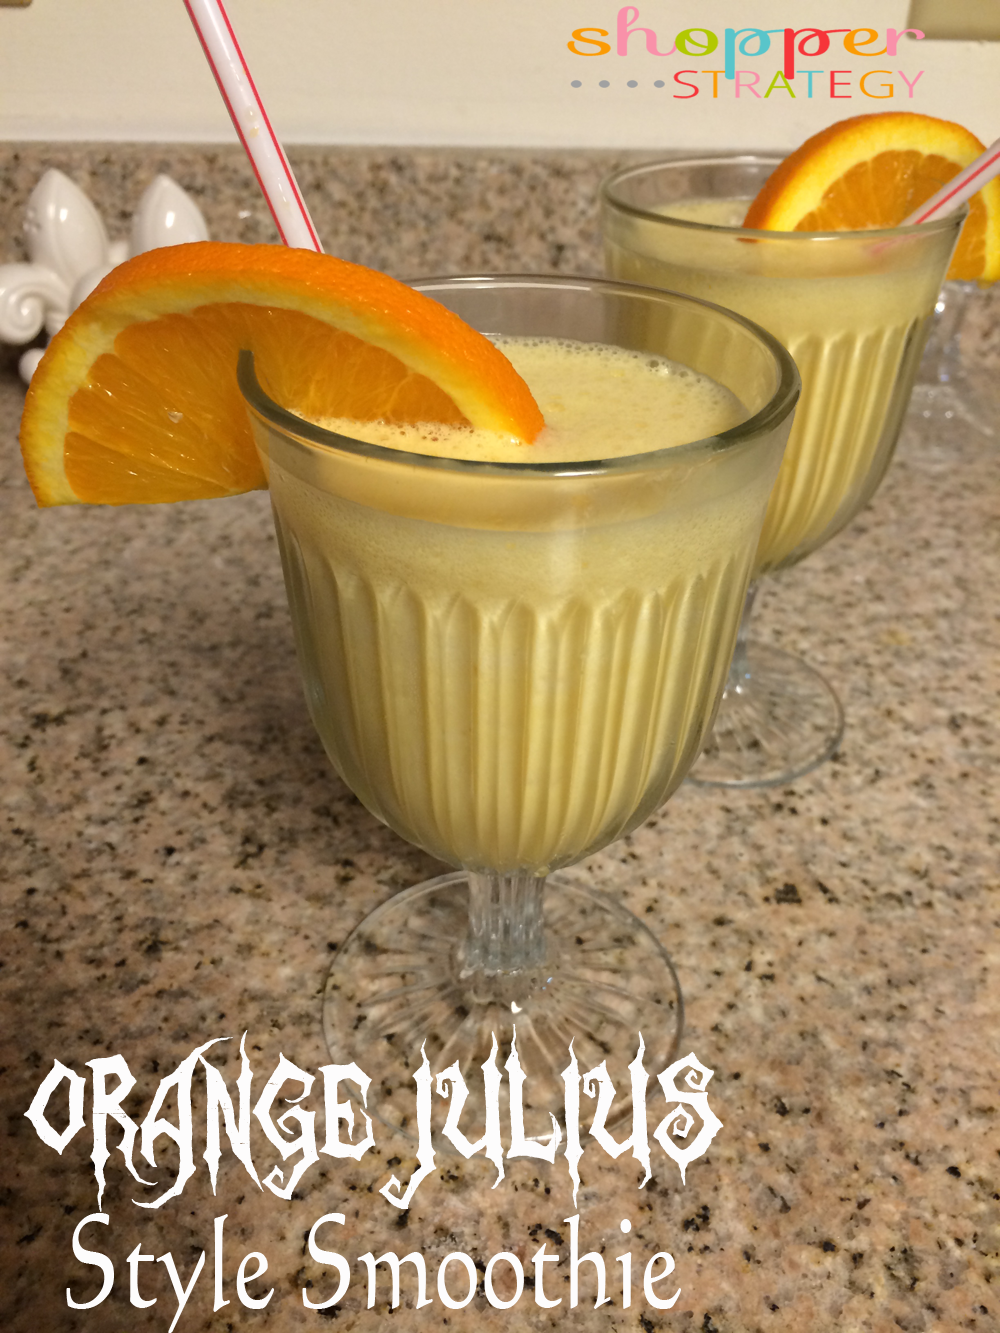 Orange Julius Style Smoothies with TruMoo